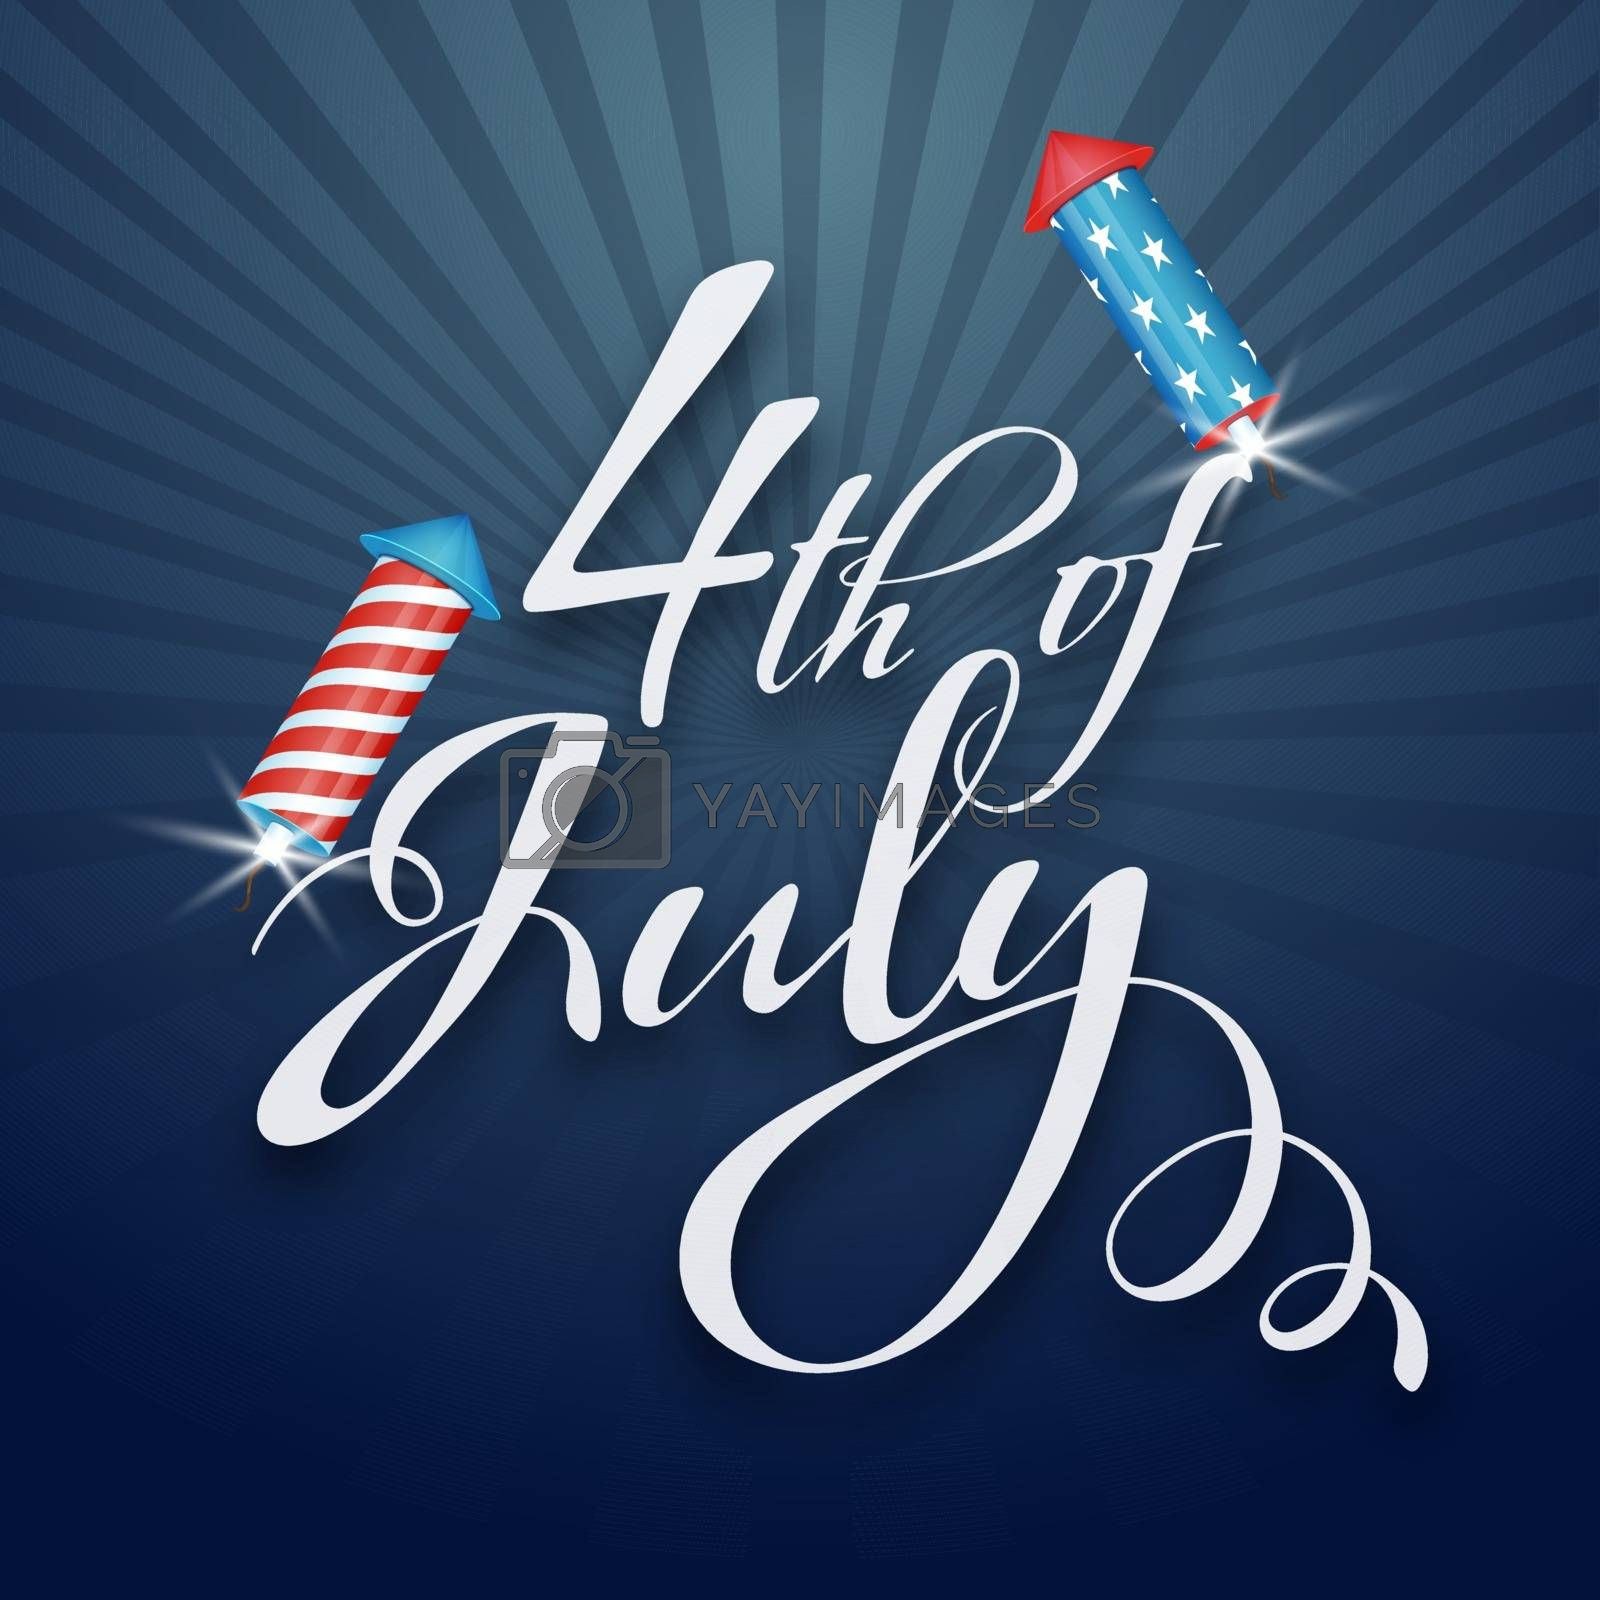 4th of july Independence celebration background with firework rocket in USA flag colors.